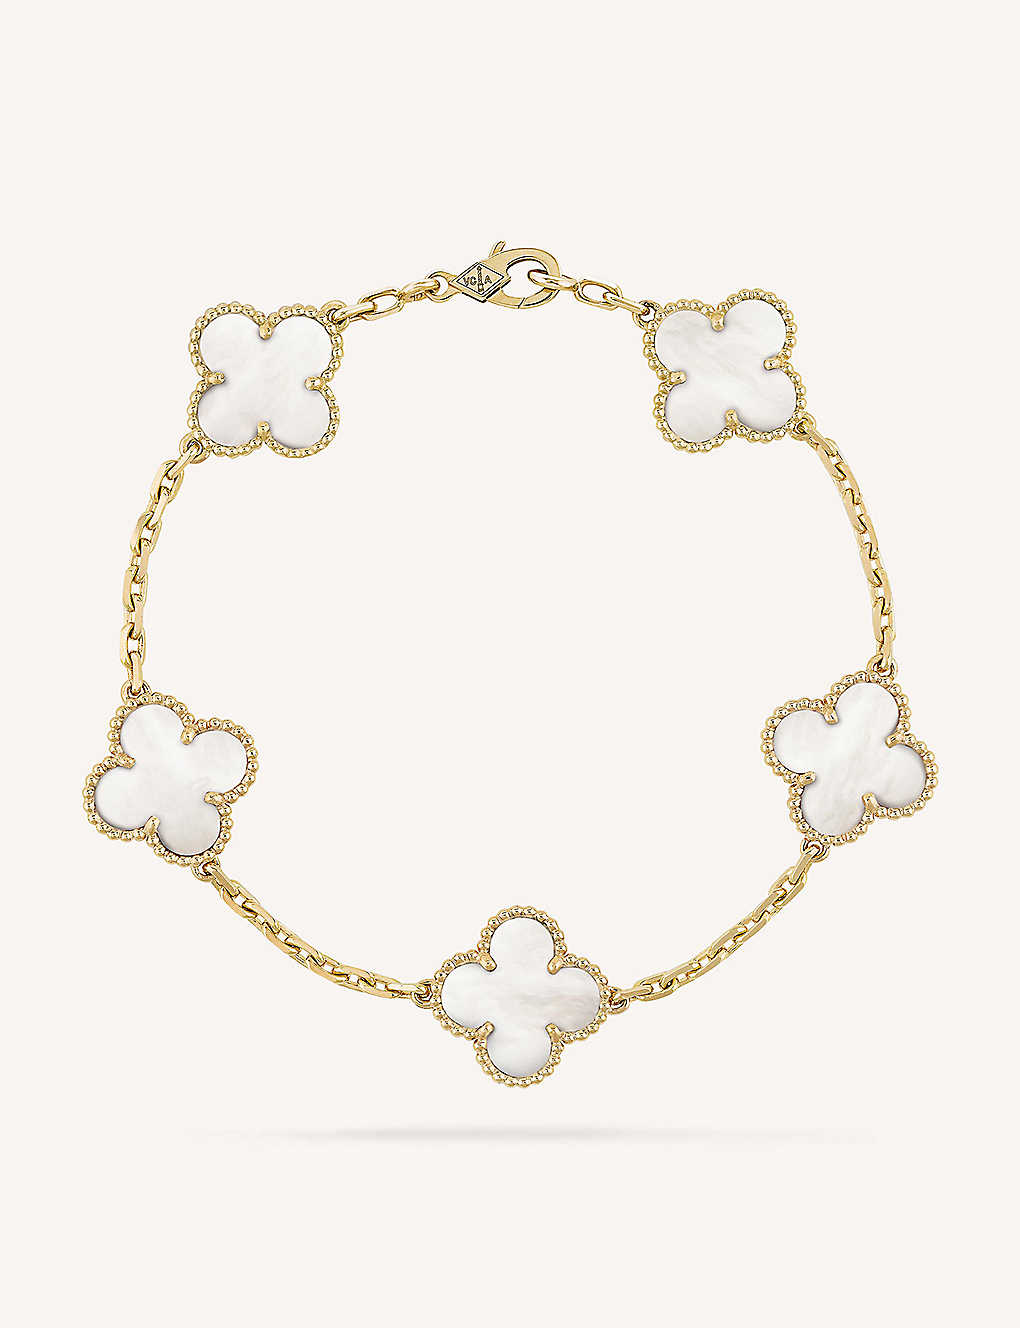 d2e8f4a2bc864b VAN CLEEF & ARPELS - Vintage Alhambra gold and mother-of-pearl ...